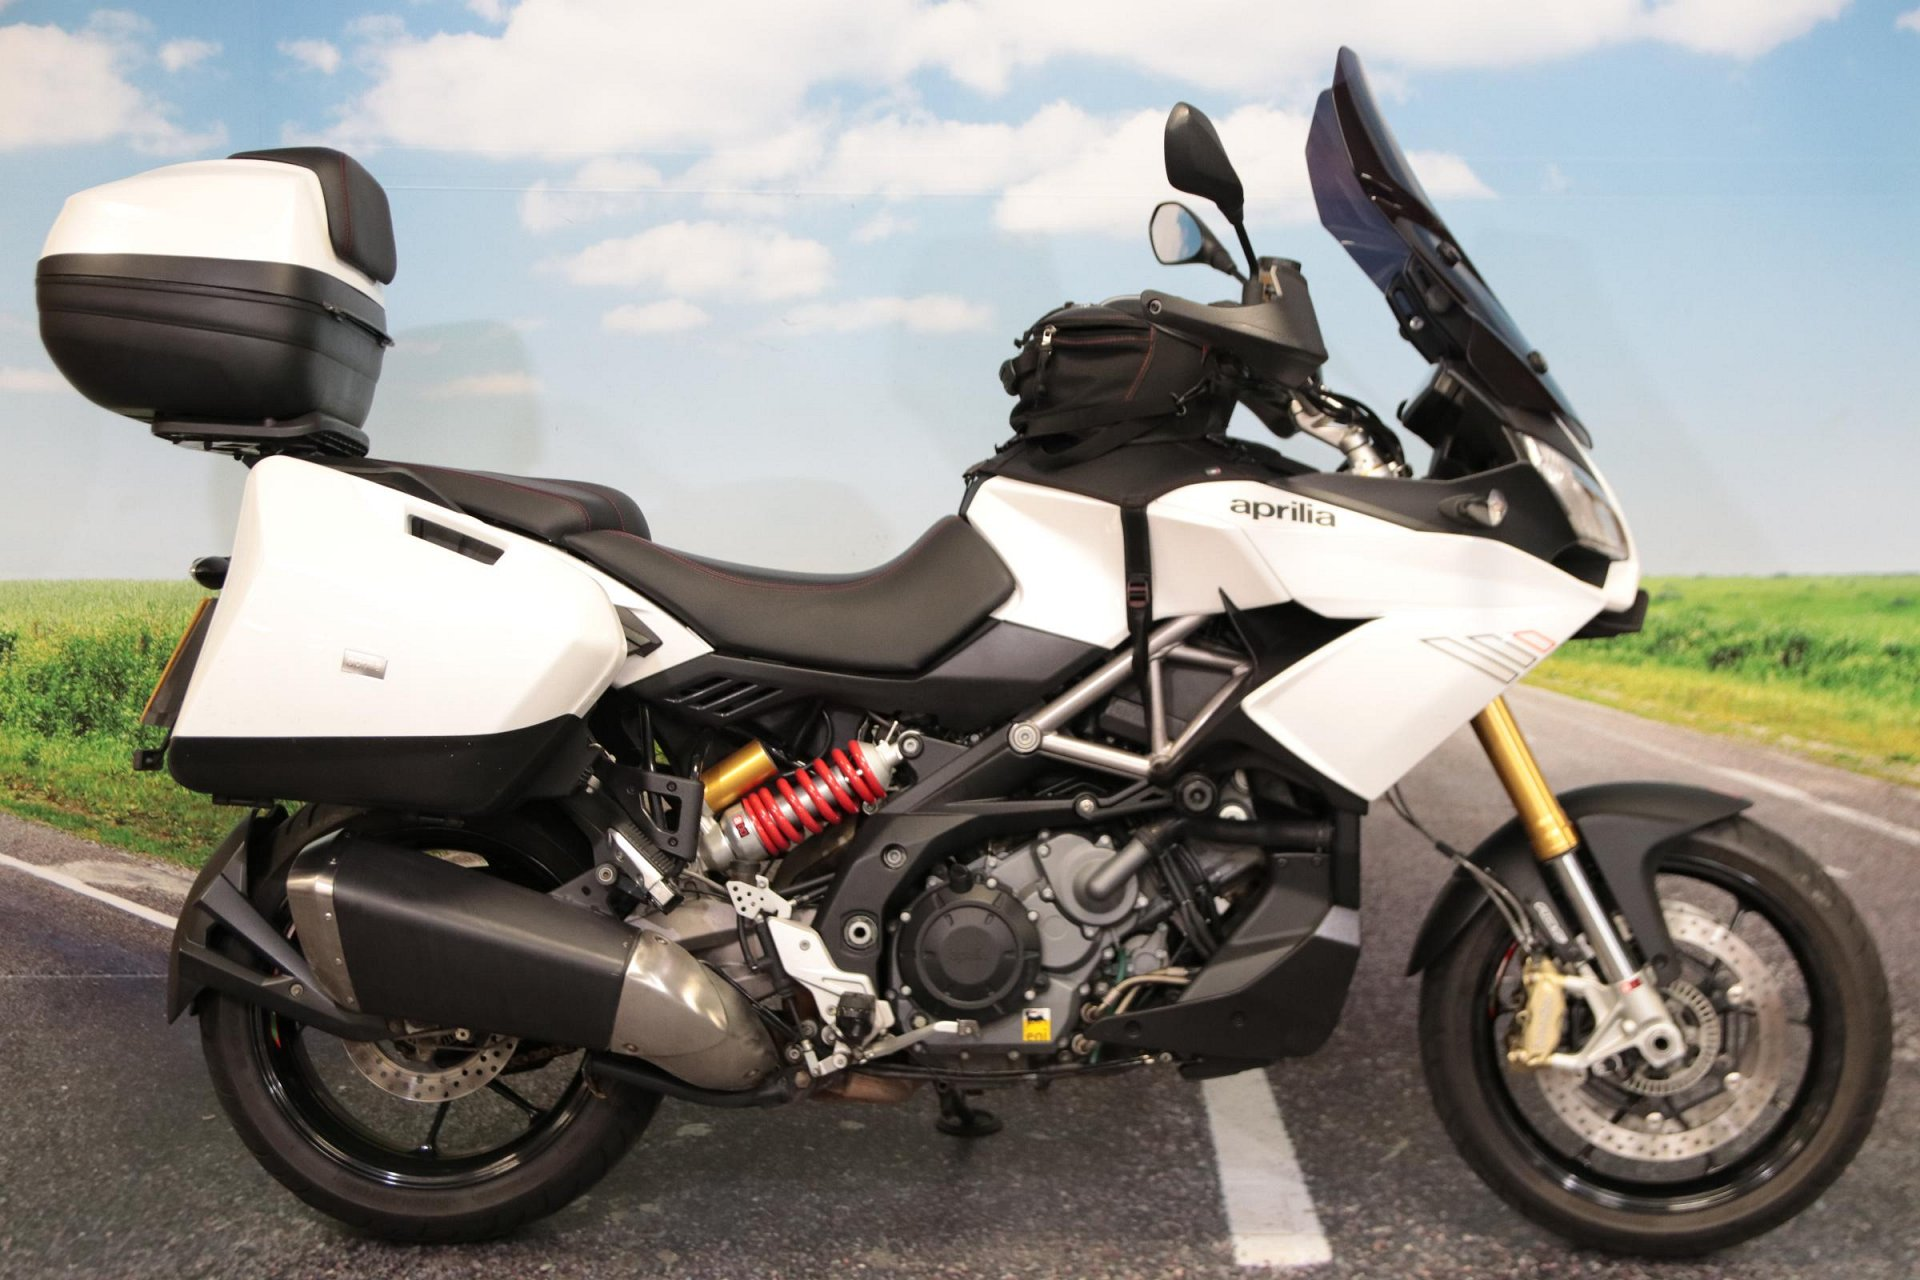 2015 Aprilia Caponord 1200 ABS for sale in South Wales